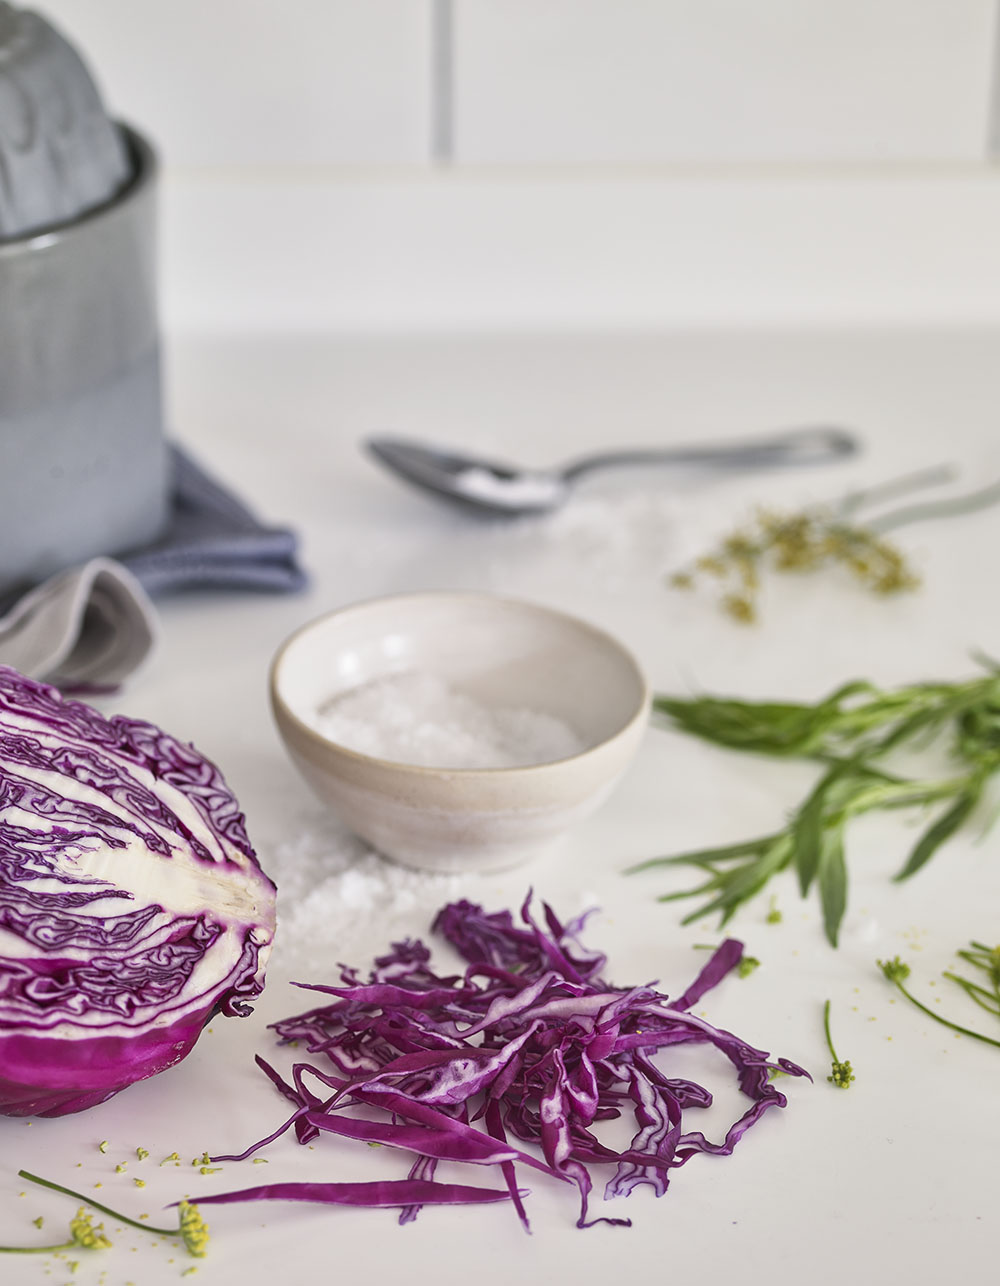 herby kraut herbs to help your health